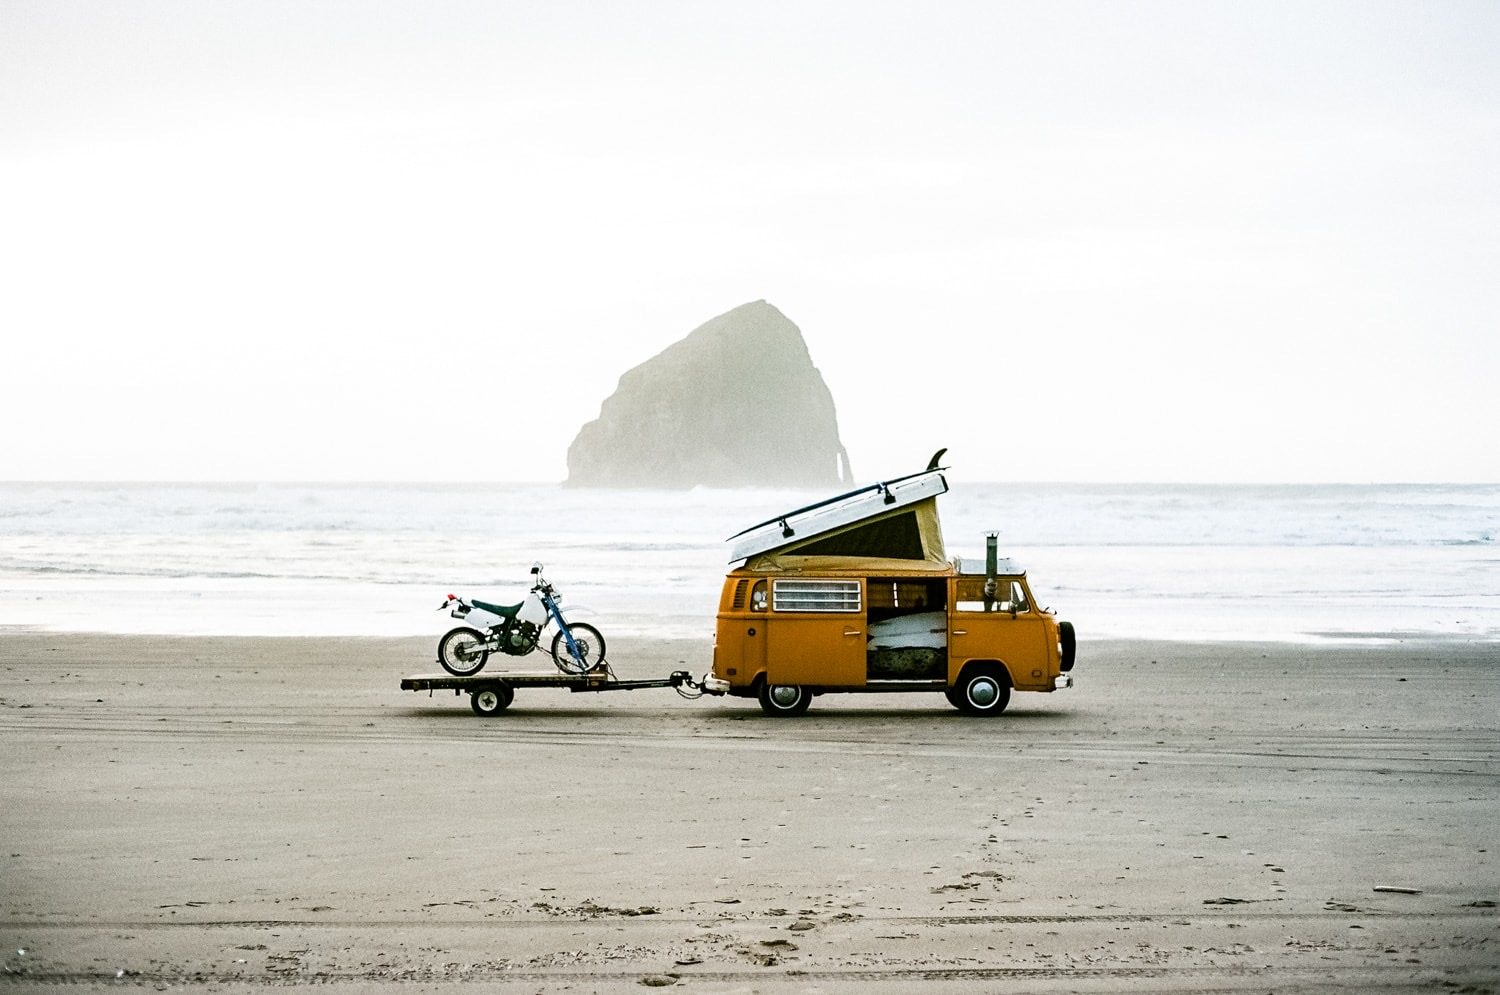 HERE ARE THE BEST TRAVEL VEHICULES FOR SURFERS